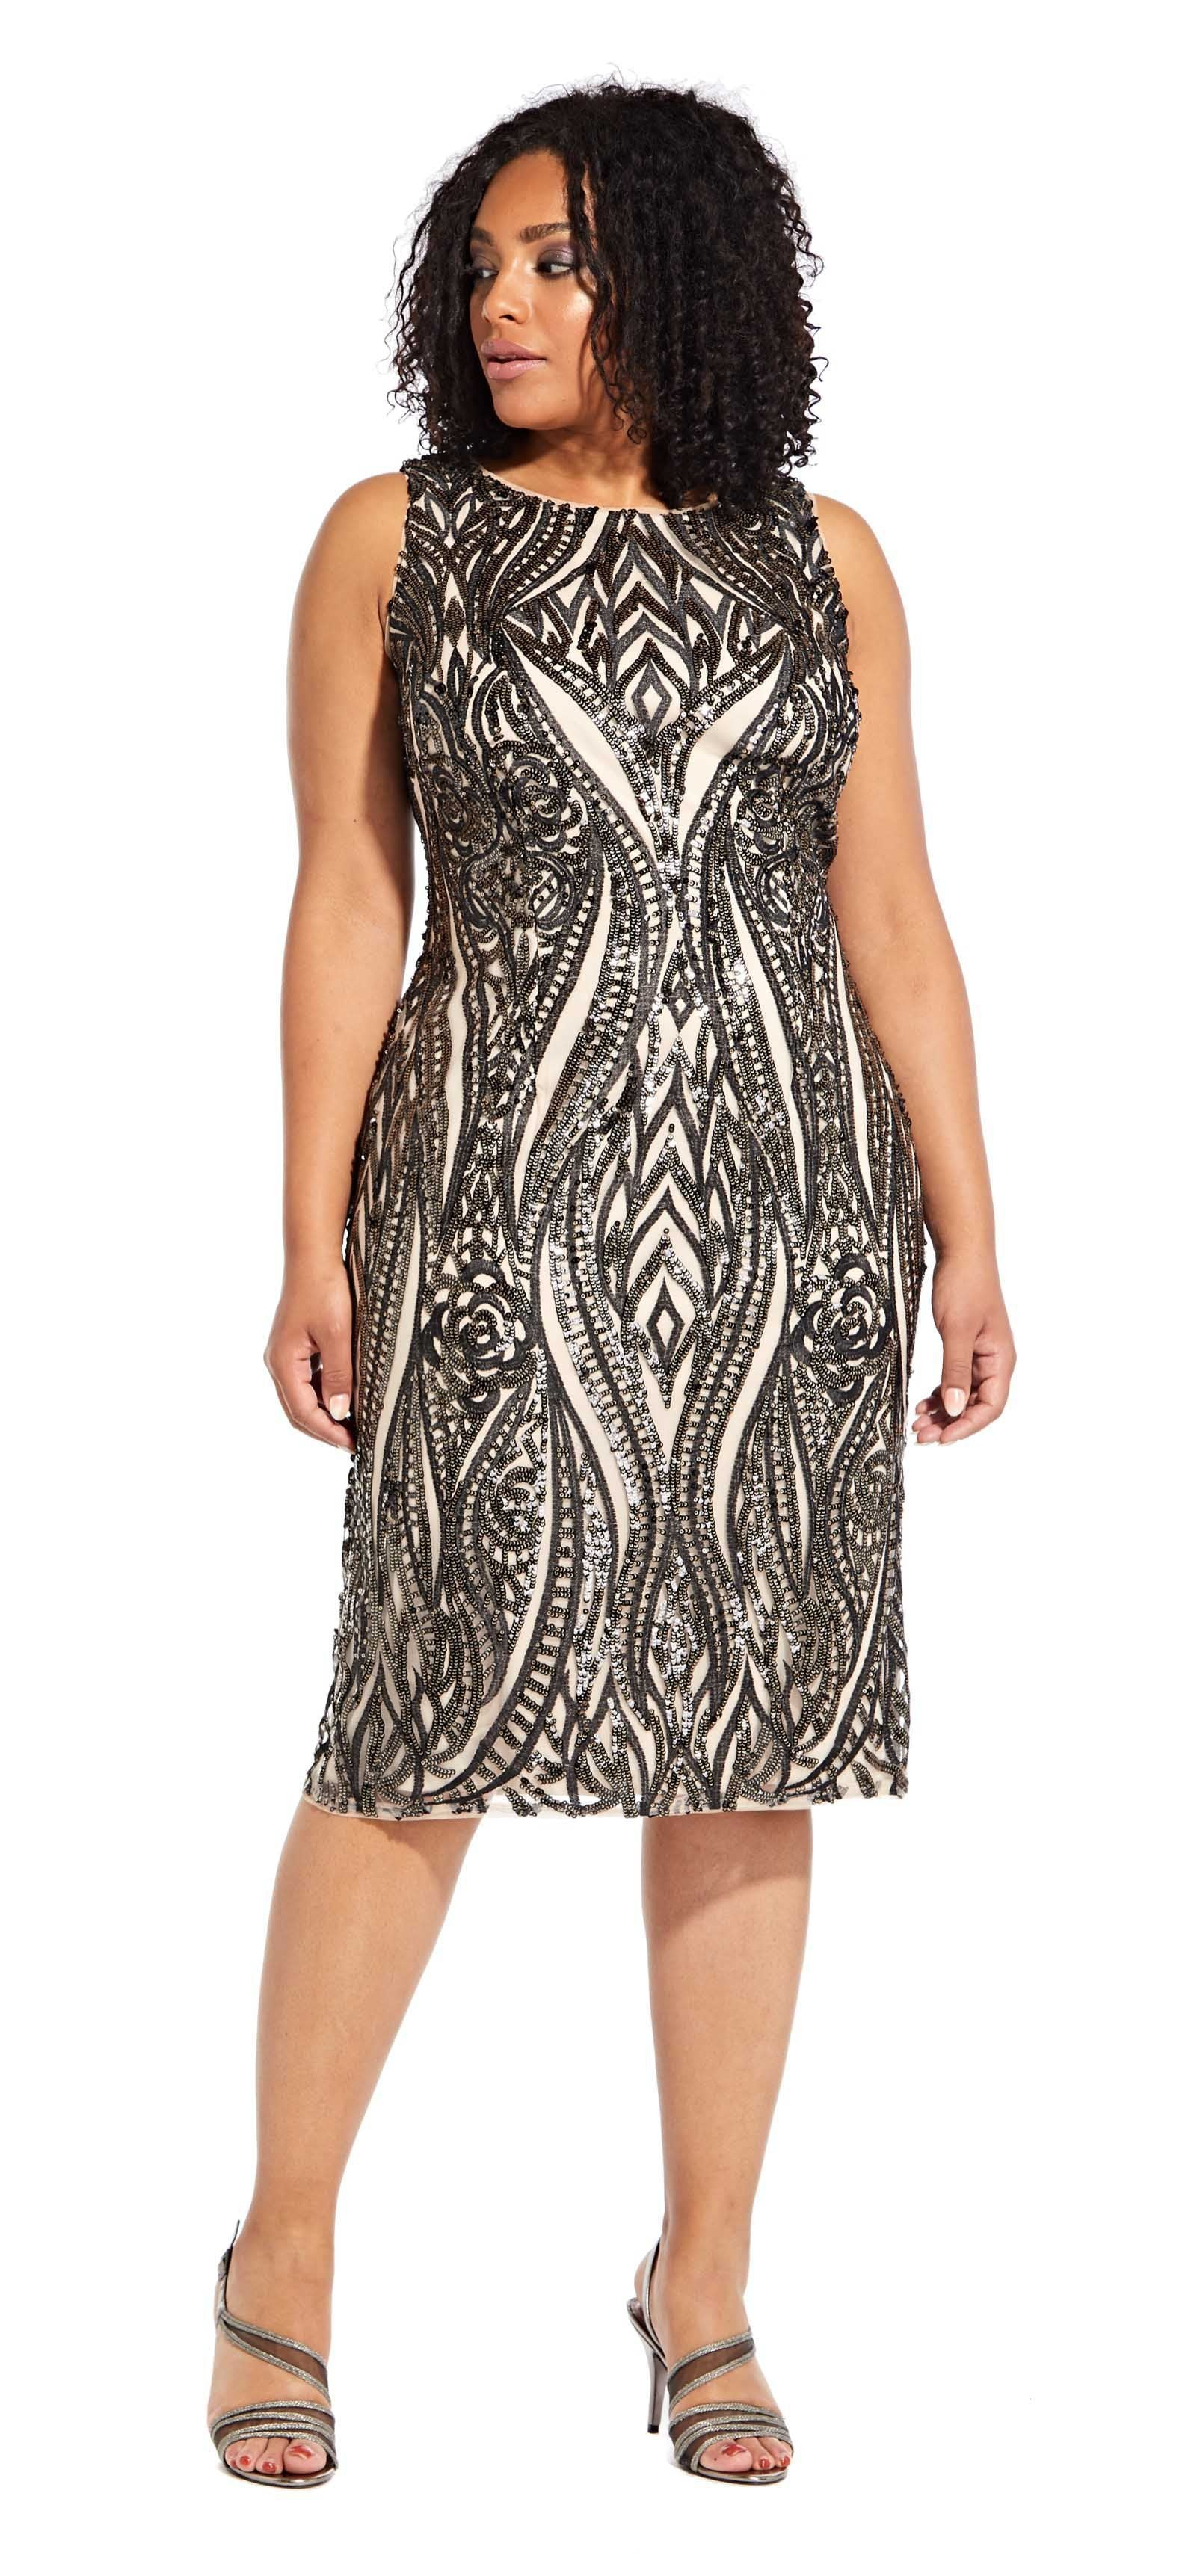 Adrianna Papell - AP1E204314 Sequined Jewel Cocktail Dress In Black and Nude